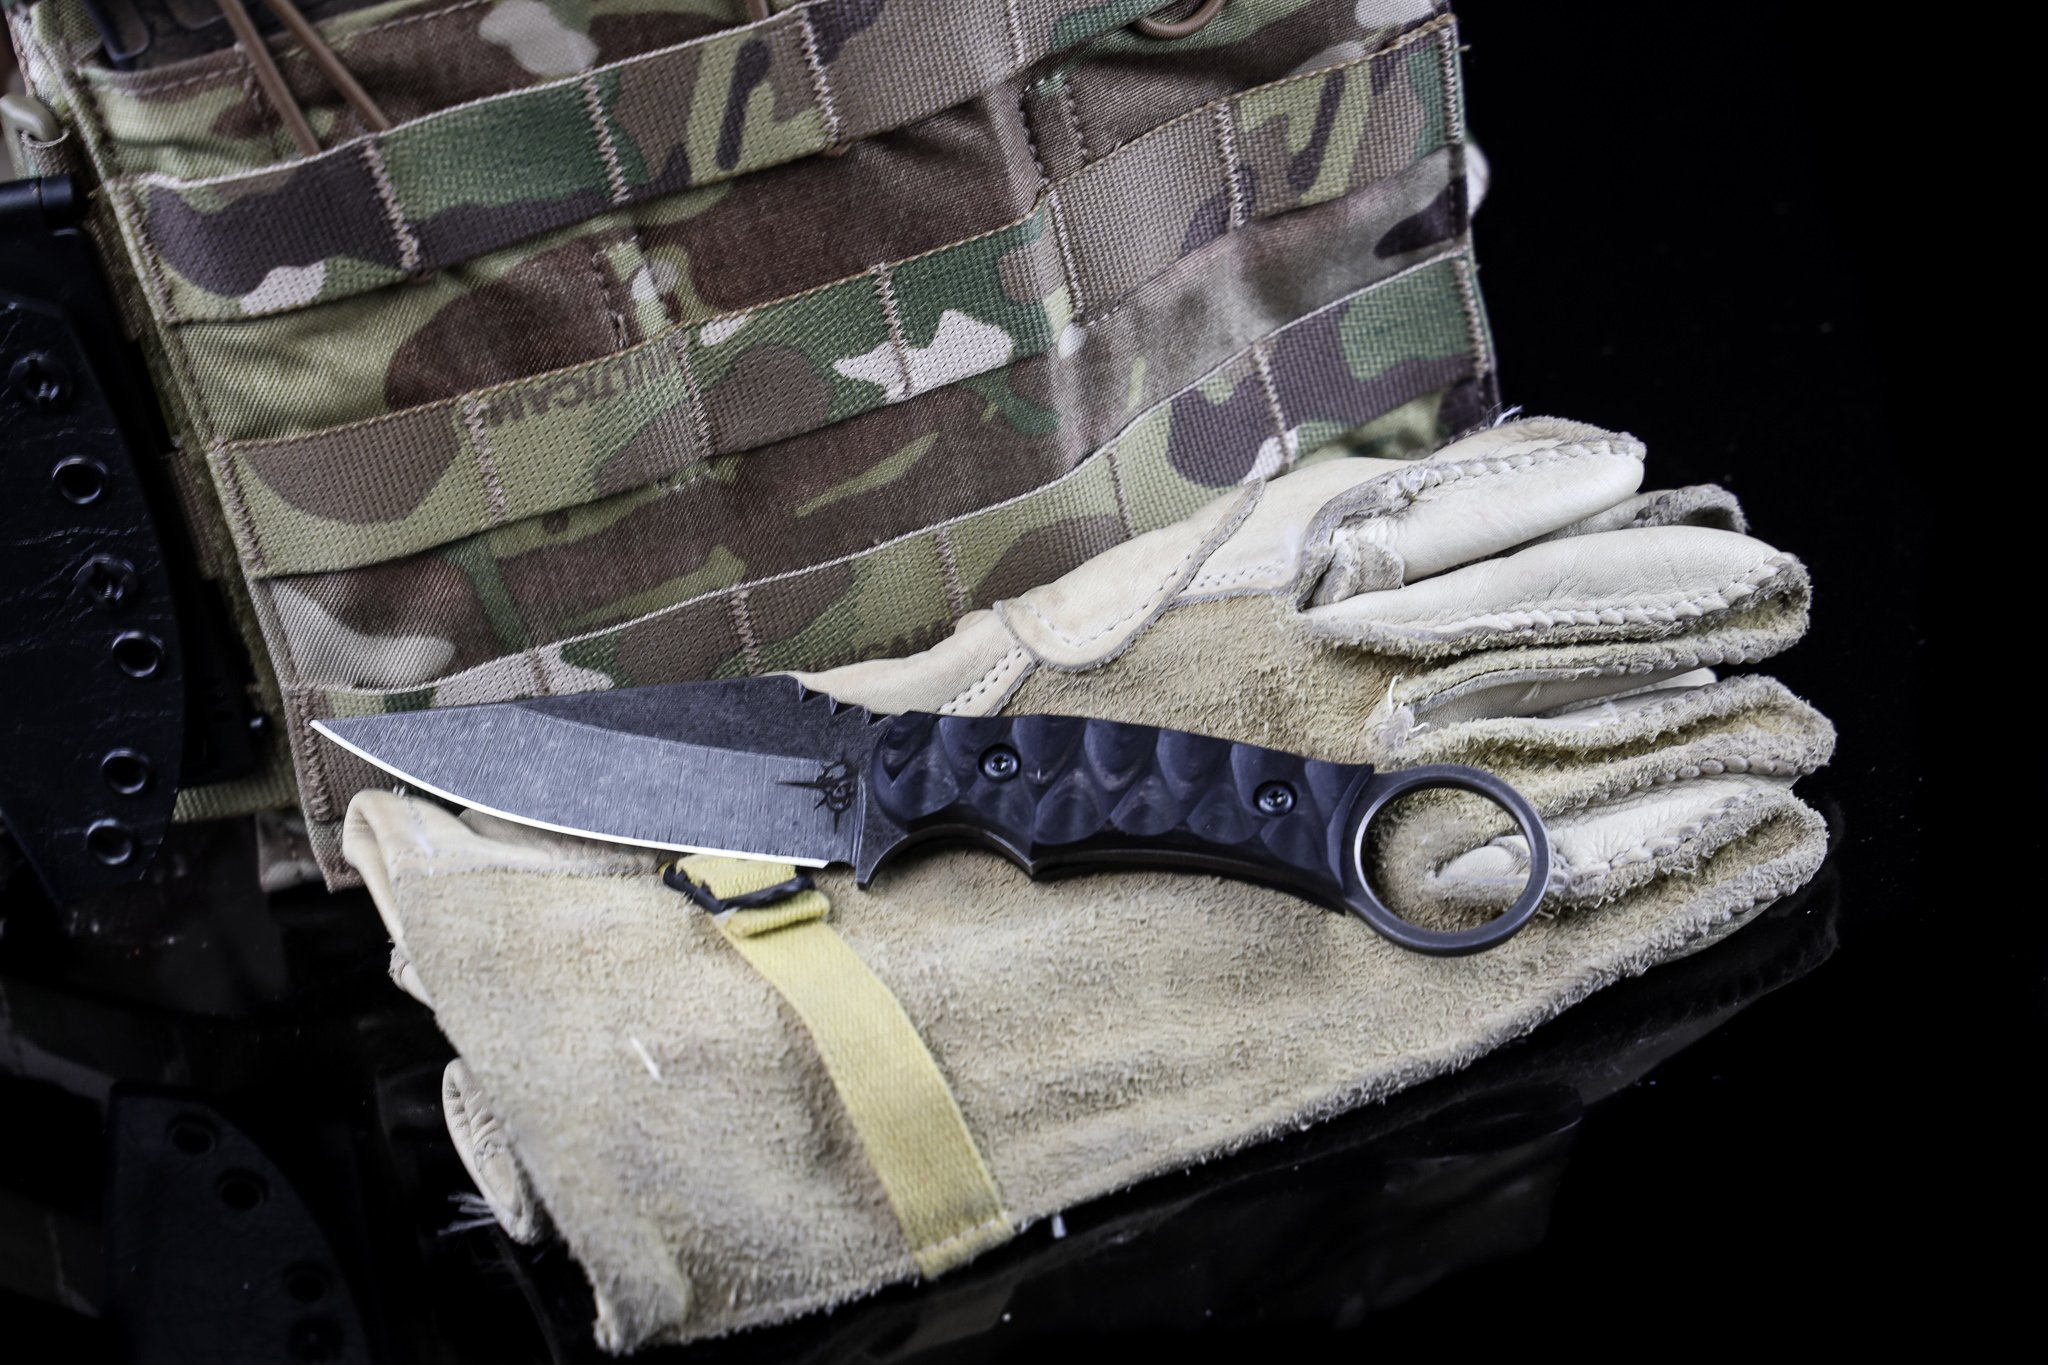 TOOR KNIVES ANNOUNCES THE VANDAL FIXED BLADE KNIFE!!